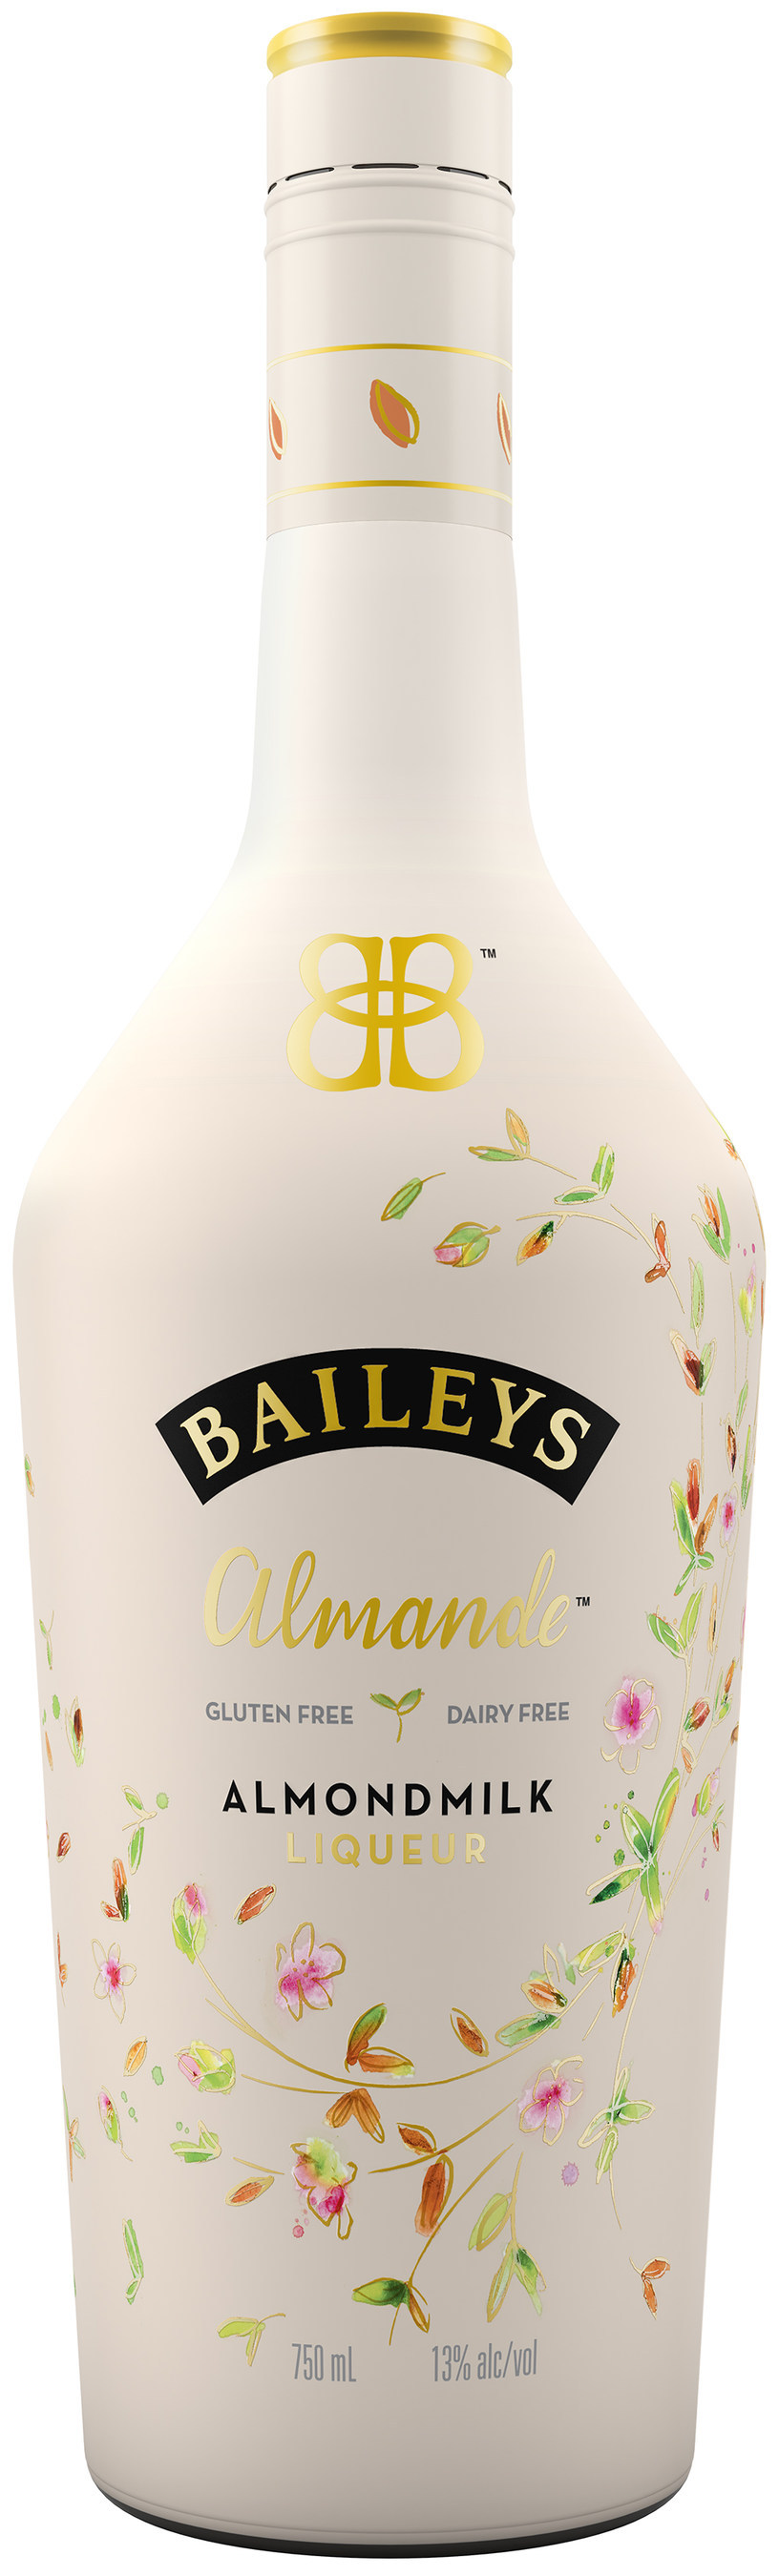 "A plant eating lifestyle doesn't have to be boring, hard - we just need businesses and people to switch and educate on plant living and lifestyle.  Given it's Friday we thought we would celebrate with a Baileys Almande Almondmilk Liqueur.    That's right Vegans across the world are cheering to the sound of Baileys.  This naturally light tasting spirit is a dairy-free, gluten-free and certified vegan liqueur that blends the luscious, nutty flavors of real almond milk with delicious vanilla for an incredibly versatile treat. Last year Baileys hit issues with creating a certified vegan product when it was discovered they used beeswax in the recipe.    Baileys worked hard to remove all animal products from the formulation.  Bailey's representative Dominic Benigno told VegNews ""We respect vegans and veganism, want to be fully transparent, and offer Irish cream that everyone can enjoy.""  And it seems as though they've finally delivered. ""We are excited to welcome spring with Baileys Almande, which offers the same quality and delicious flavor that people love about Baileys, but now in a dairy-free, gluten-free and vegan option that we know many are thrilled to enjoy,"" said Alex Tomlin, SVP of Scotch Whisky & Reserve Brands at Diageo North America. ""Baileys Almande is delicious, light and easily mixed with refreshing Vita Coco Coconut Water, which makes it the perfect warm weather treat to enjoy responsibly!"" While Baileys Almande is extremely versatile and lends itself perfectly to a multitude of offerings, the signature Baileys Almande Refresh showcases its effortless mixability with coconut water. Baileys Almande Refresh and Vita Coco have created delicious cocktail recipes that are dairy-free, gluten-free and vegan. No matter how it's served, new Baileys Almande is the perfect, naturally light tasting spirit that boasts the same calorie count as an average 5 ounce glass of wine, but in a much more delightful sip! To get you started on your new Vegan Baileys journey we've got this super simple recipe to kick things off. Baileys Almande Refresh Ingredients: 3 oz Baileys Almande 3 oz Vita Coco® Coconut Water Preparation: 1.       Combine Baileys Almande and Vita Cocoover crushed ice. Enjoy!"